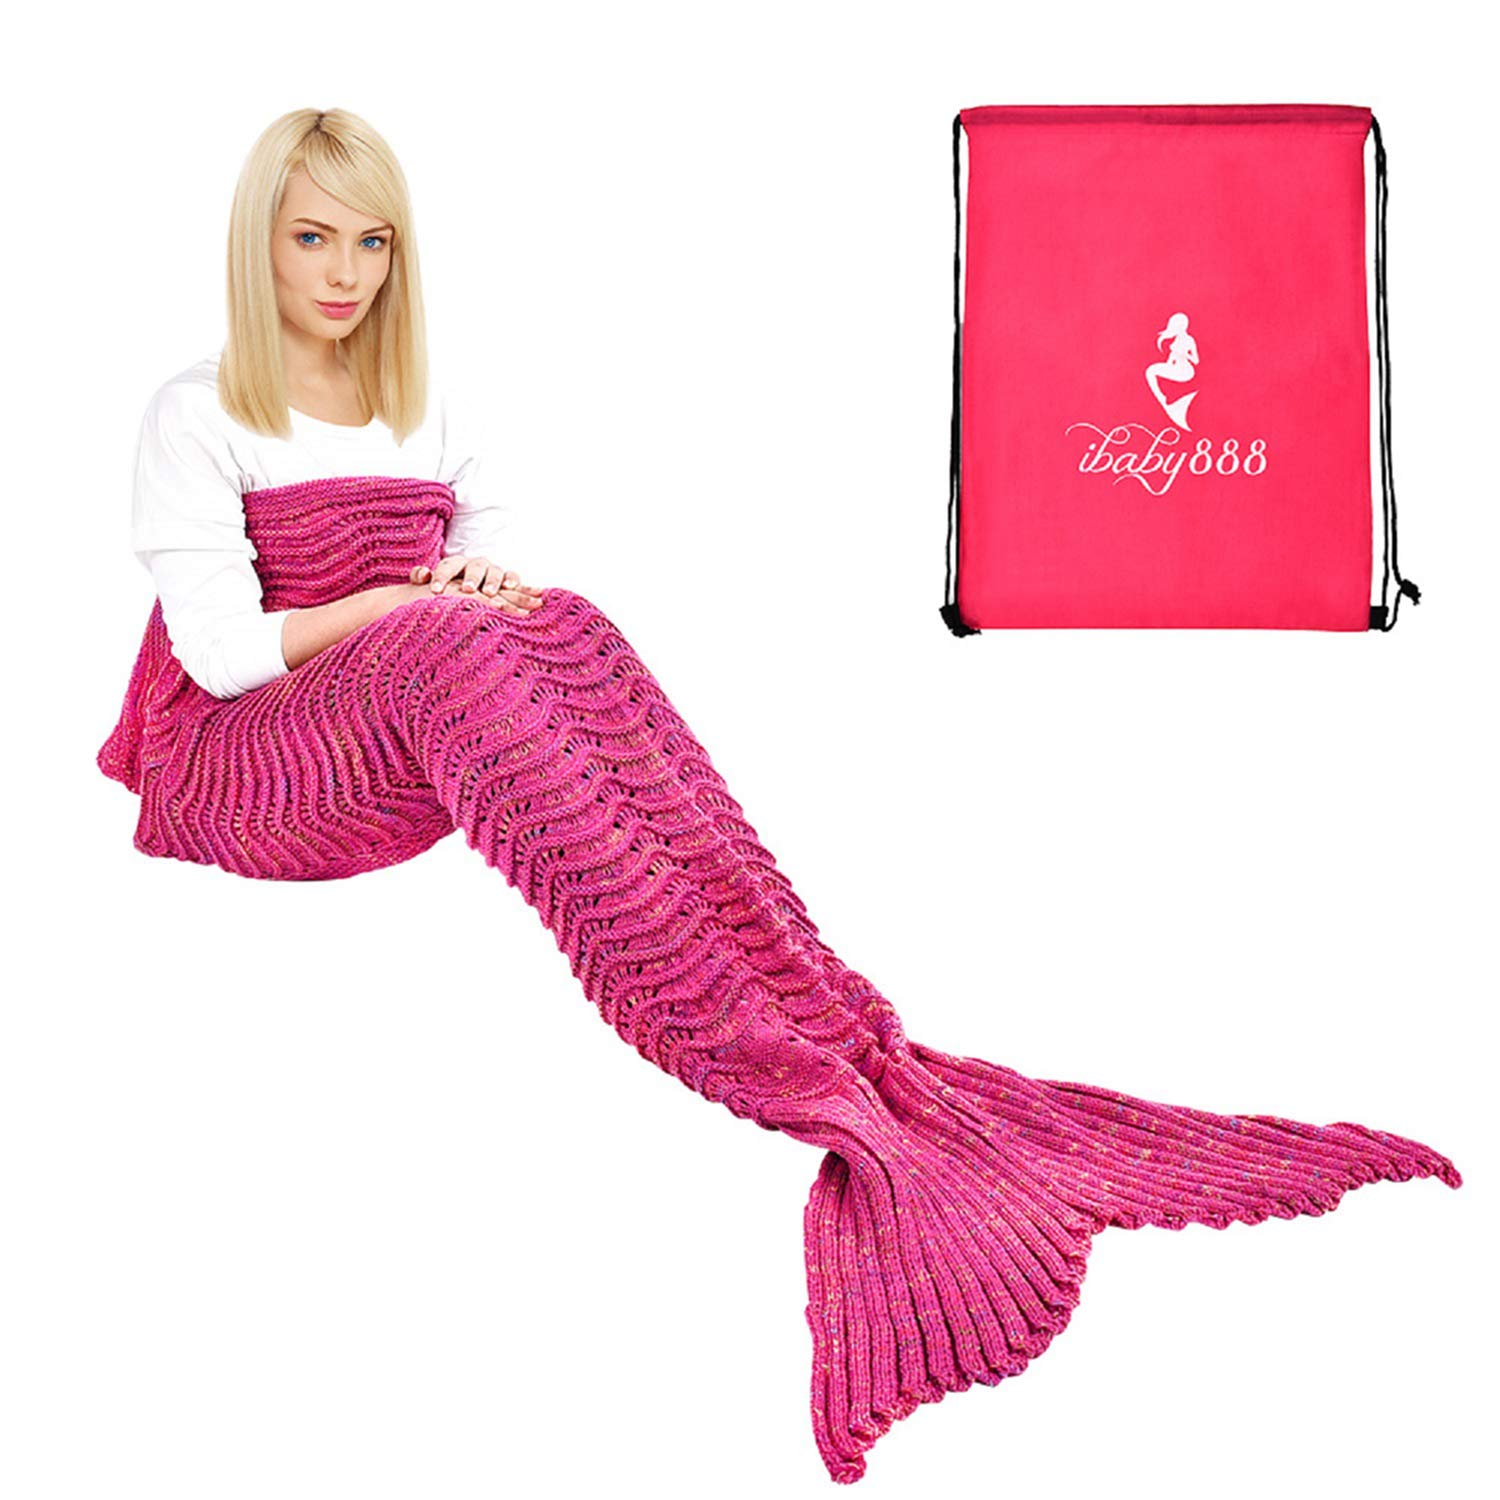 iBaby888 Wearable Mermaid Tail Blanket, All Seasons Warm Knitted Bed Blanket Sofa Quilt Living Room Sleeping Bag for Kids and Adults, Wave Pattern, 70.9'' x 35.5'' (180 x 90cm), Rose